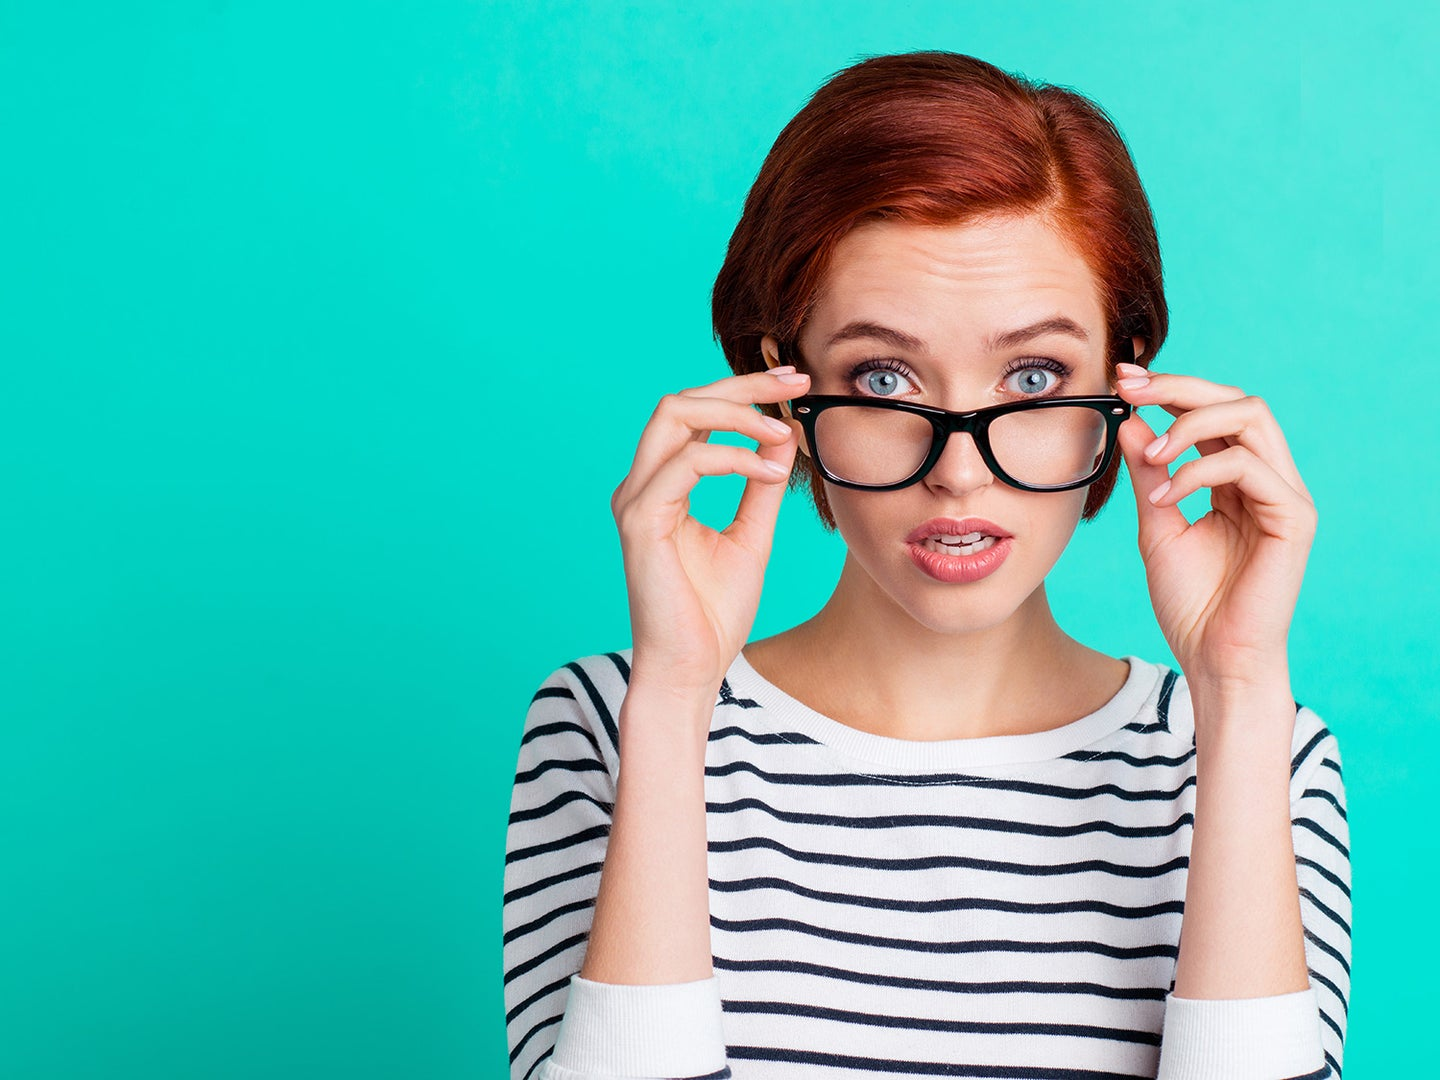 blue eyed woman pulling down glasses